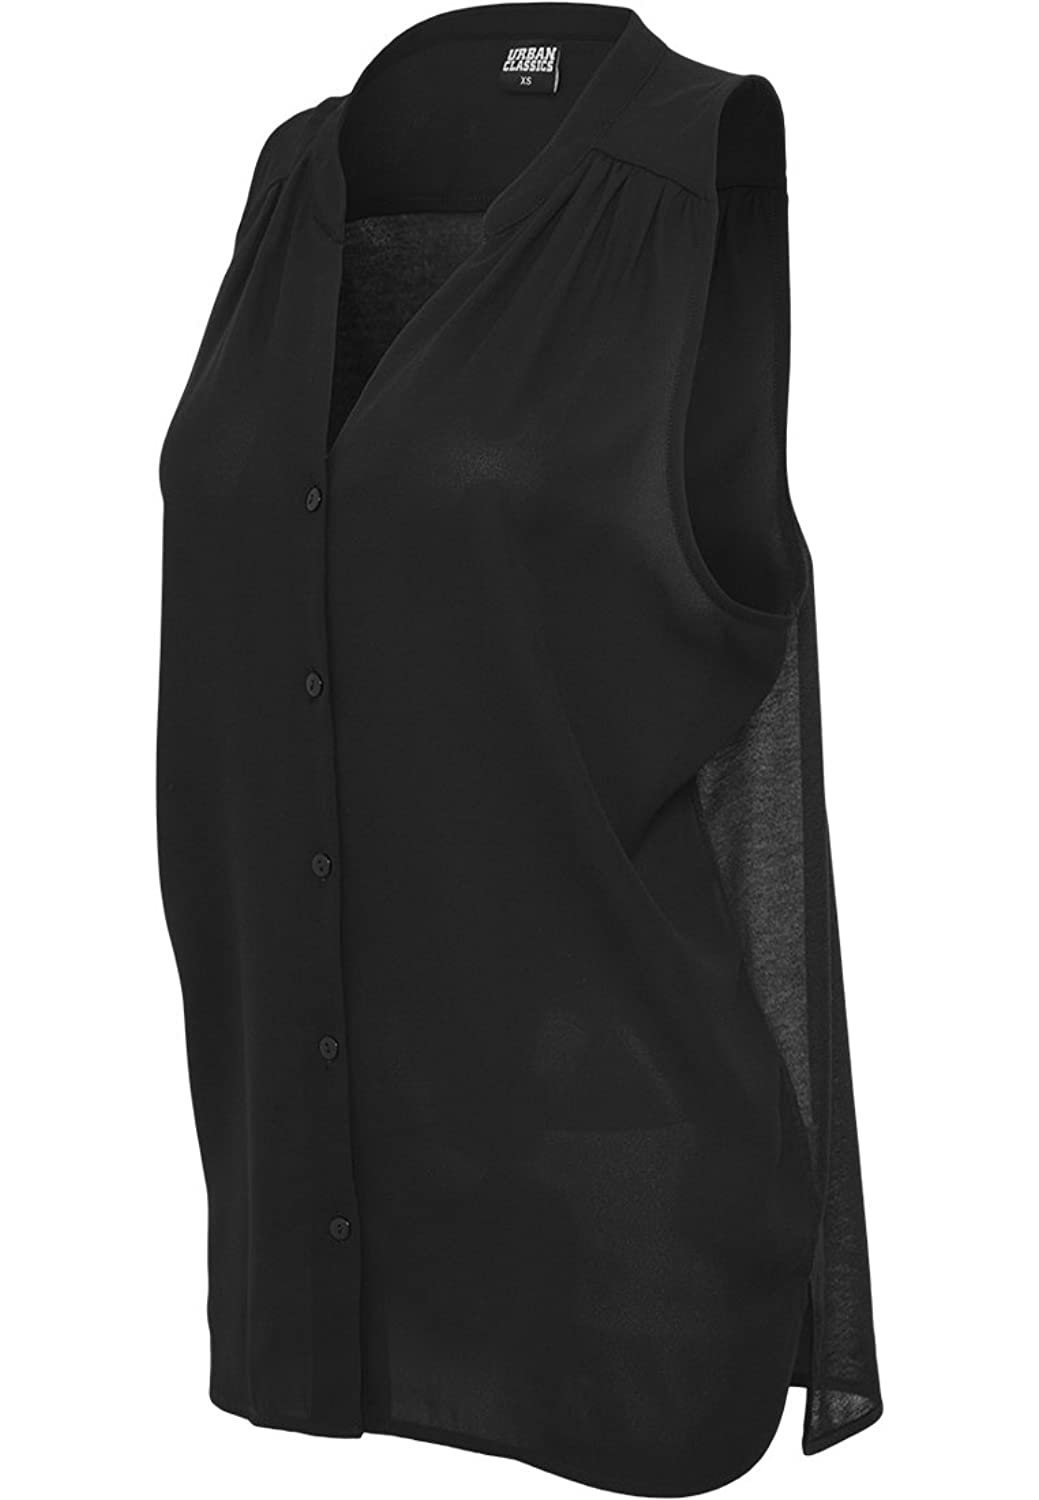 URBAN CLASSICS - Ladies Sleeveless Chiffon Blouse (black)